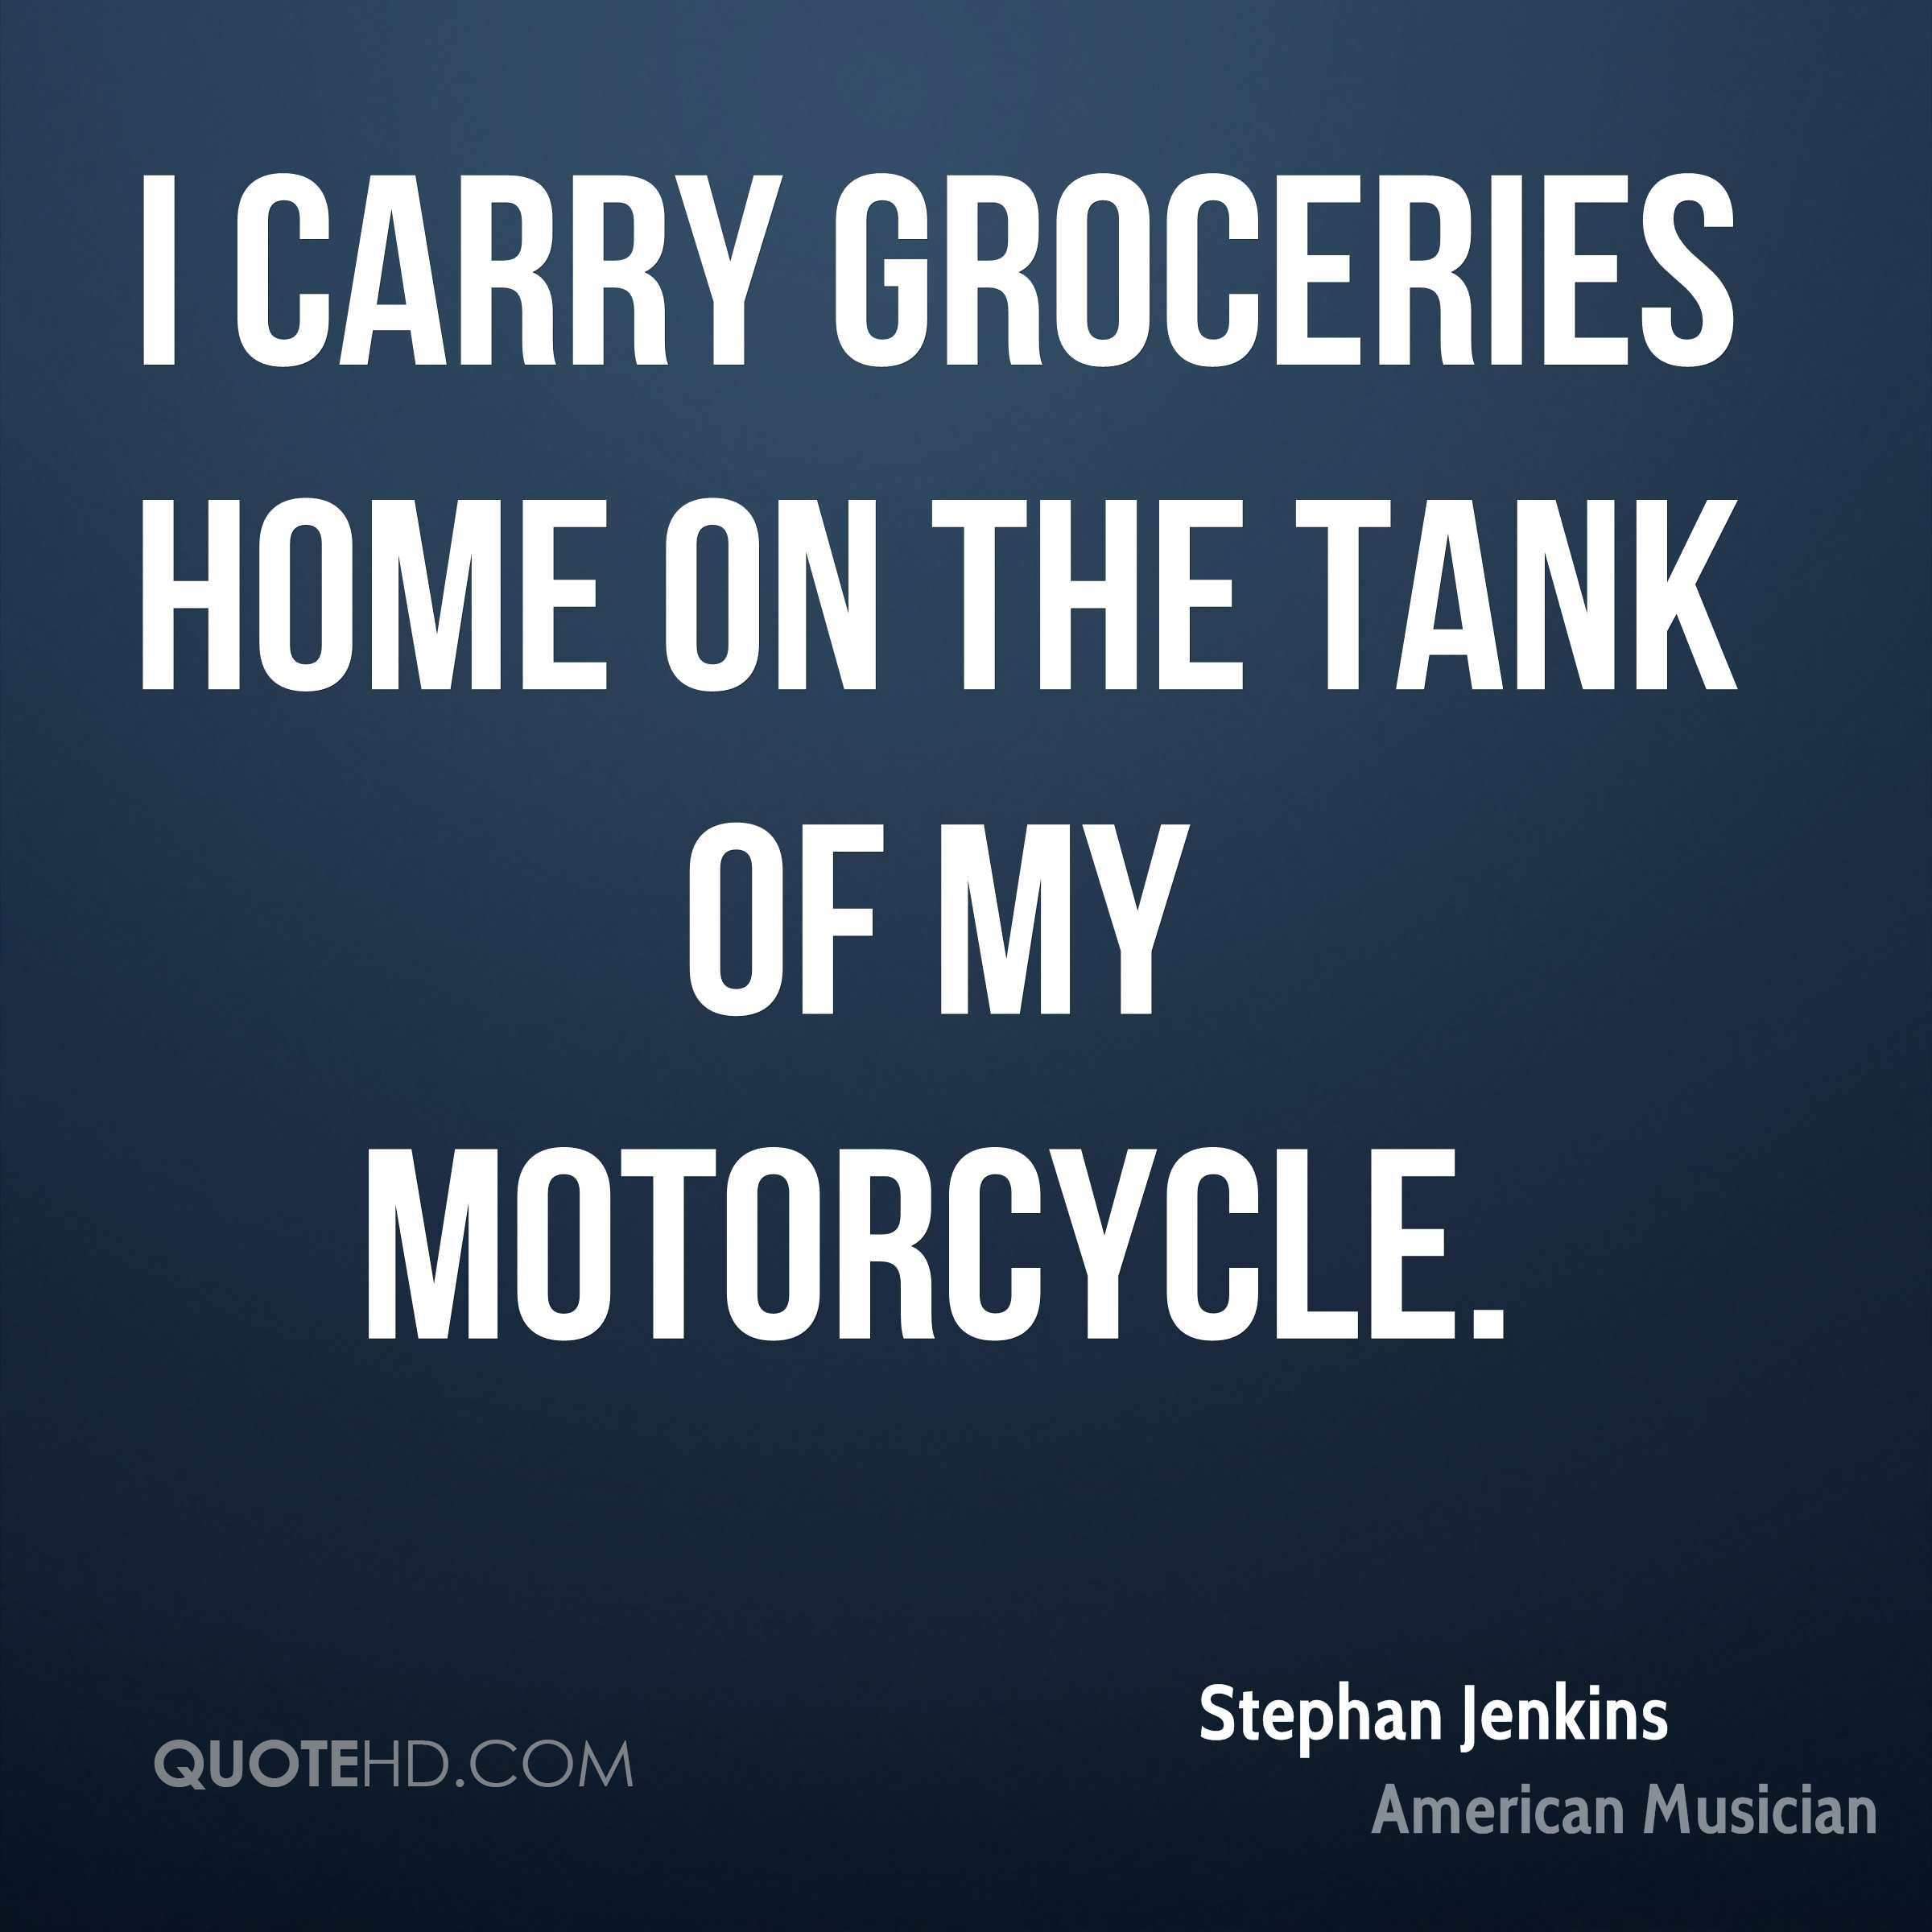 I carry groceries home on the tank of my motorcycle.